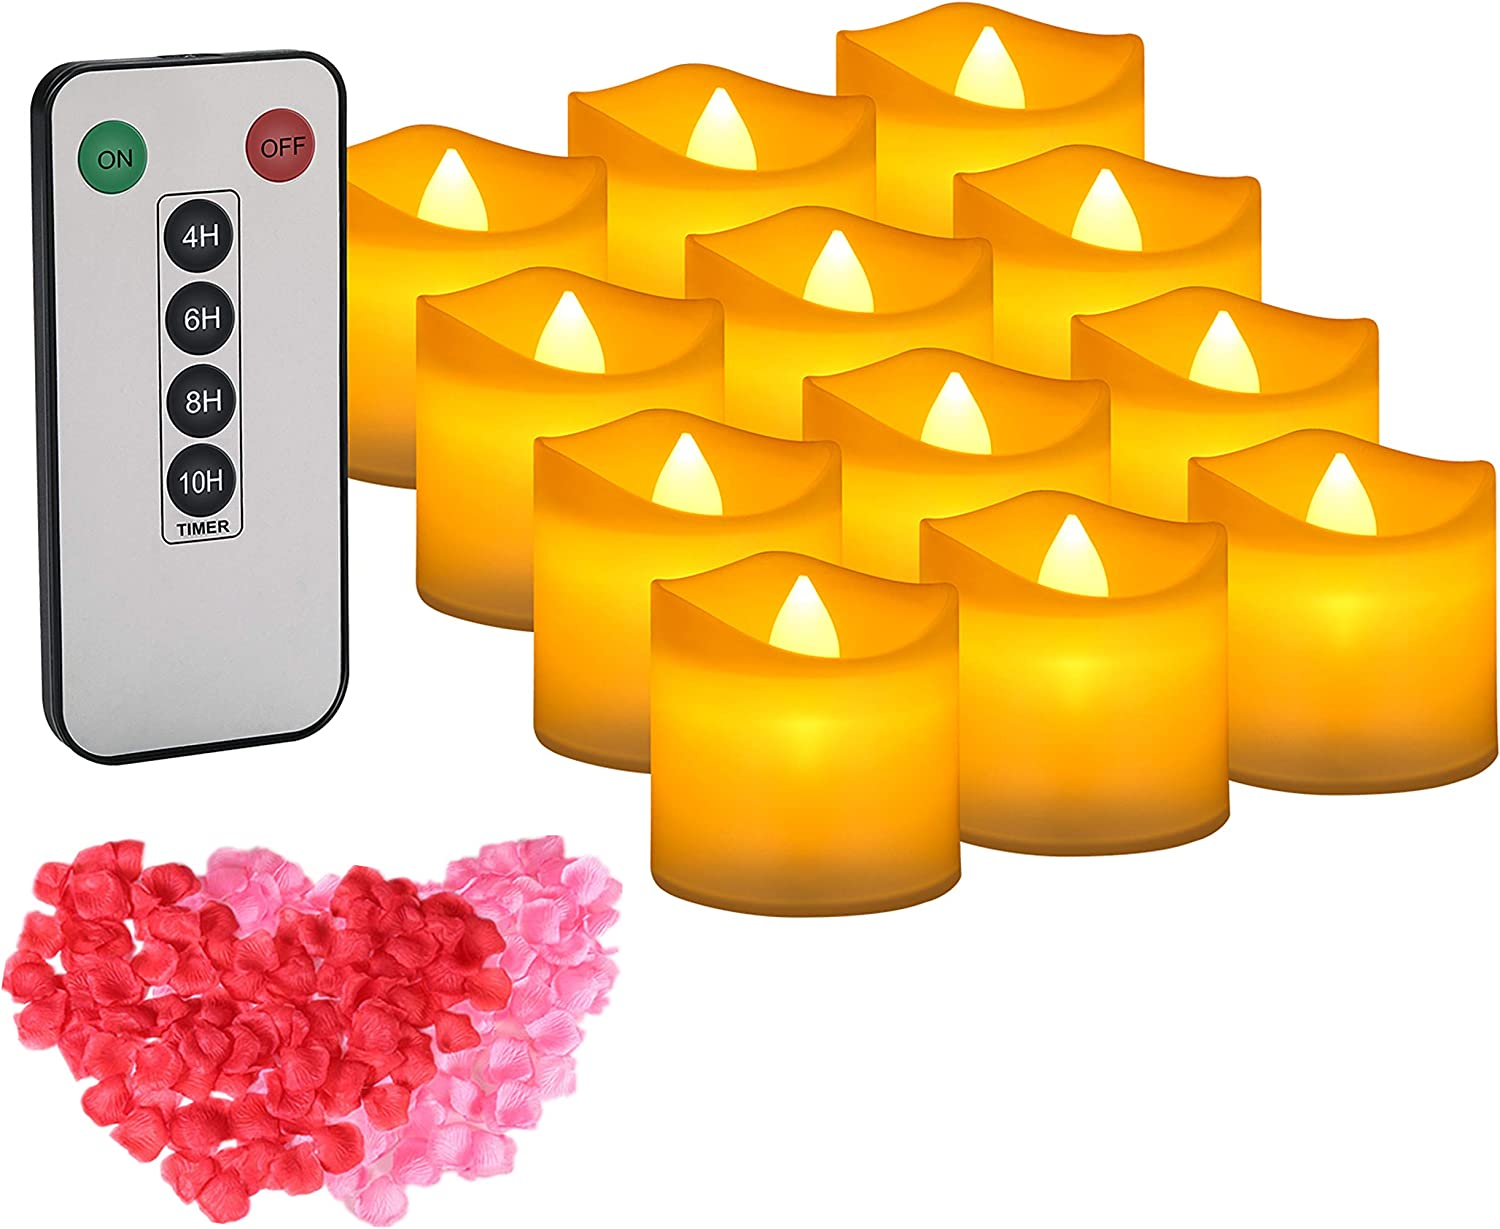 Tea Lights IMAGE Tealight Candles Control and Timer with Max 56% OFF 2021new shipping free shipping Remote